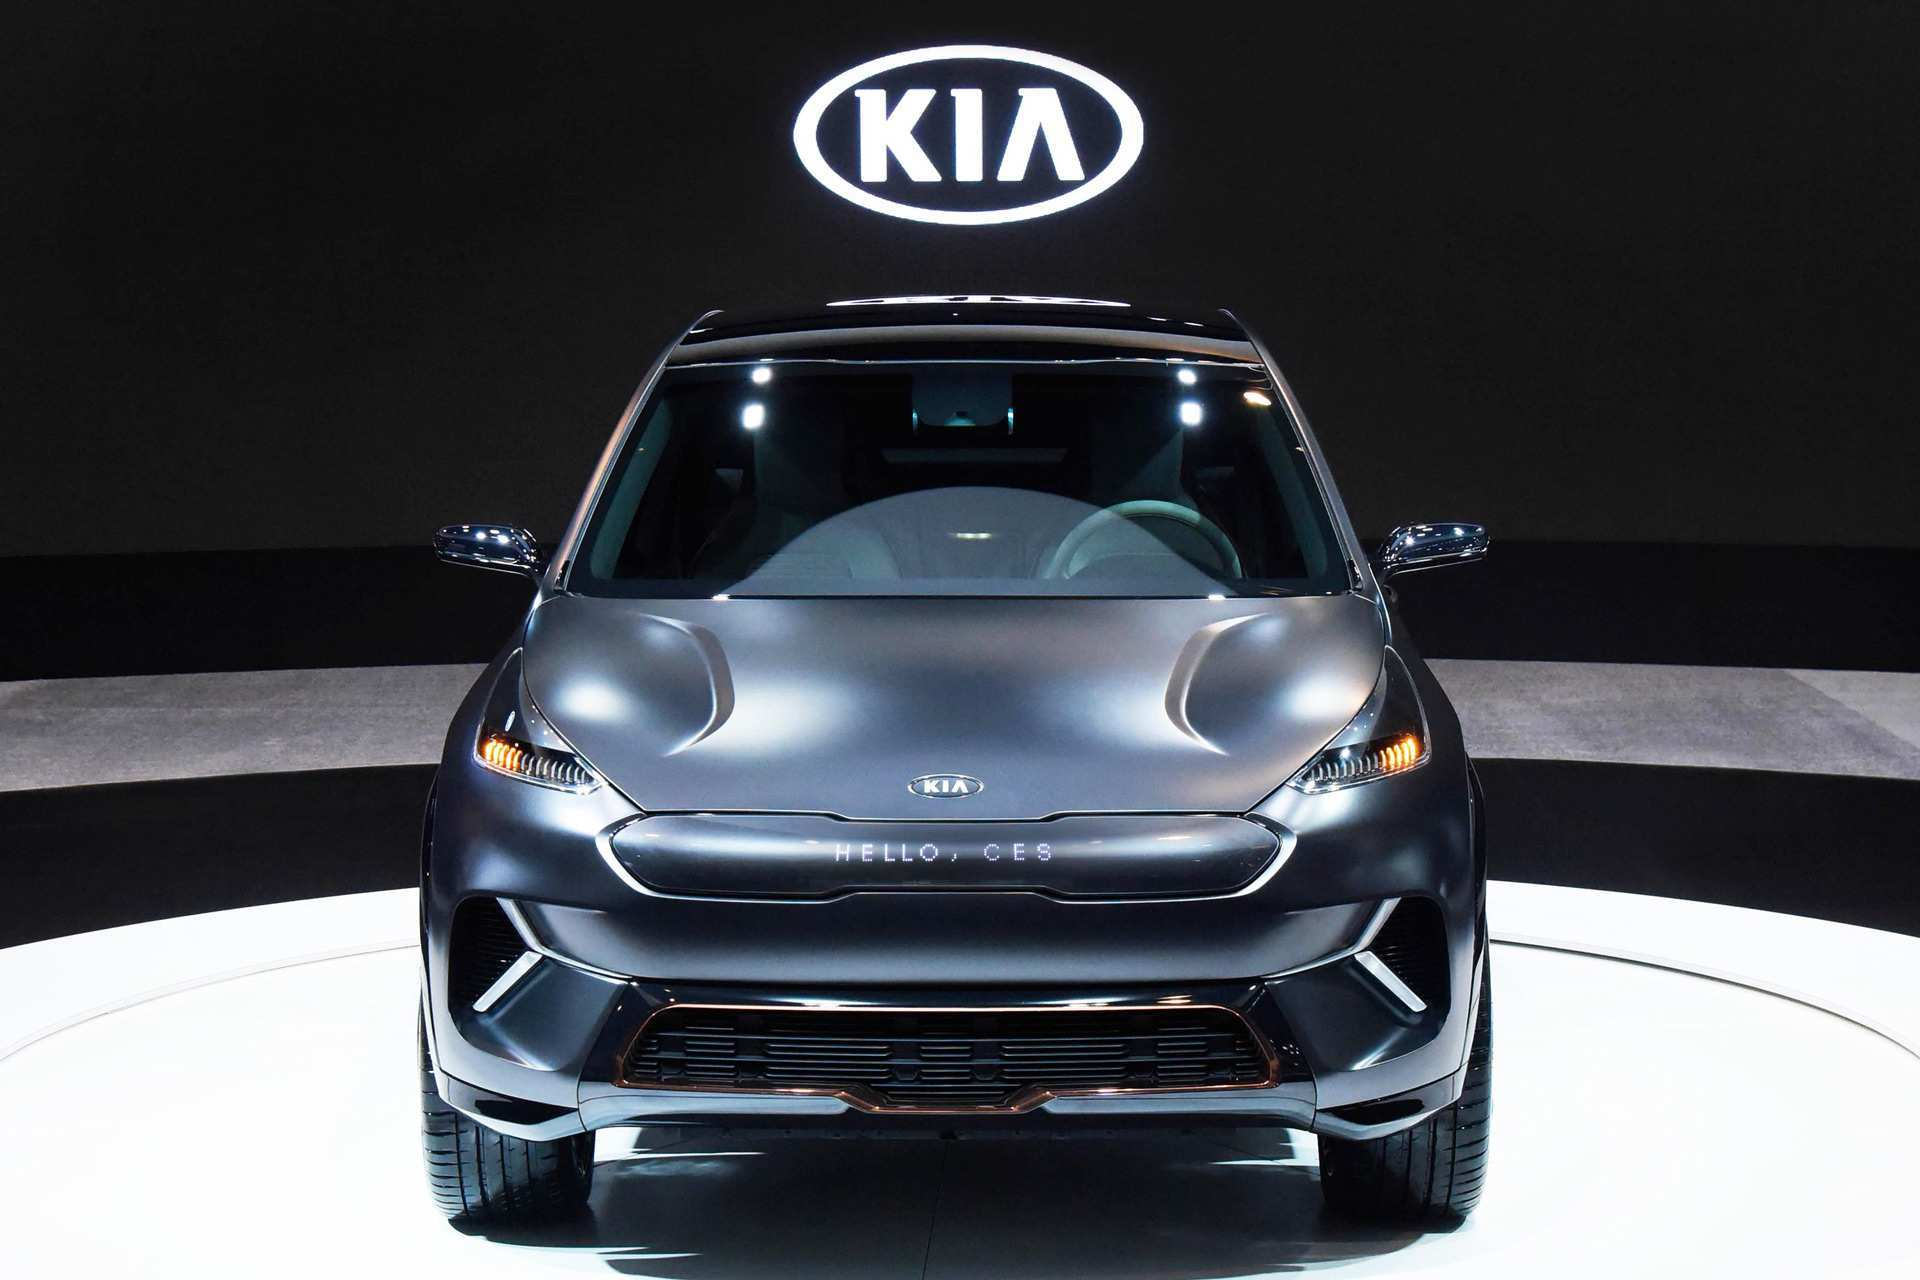 97 Best Review Kia Niro 2020 Prices for Kia Niro 2020